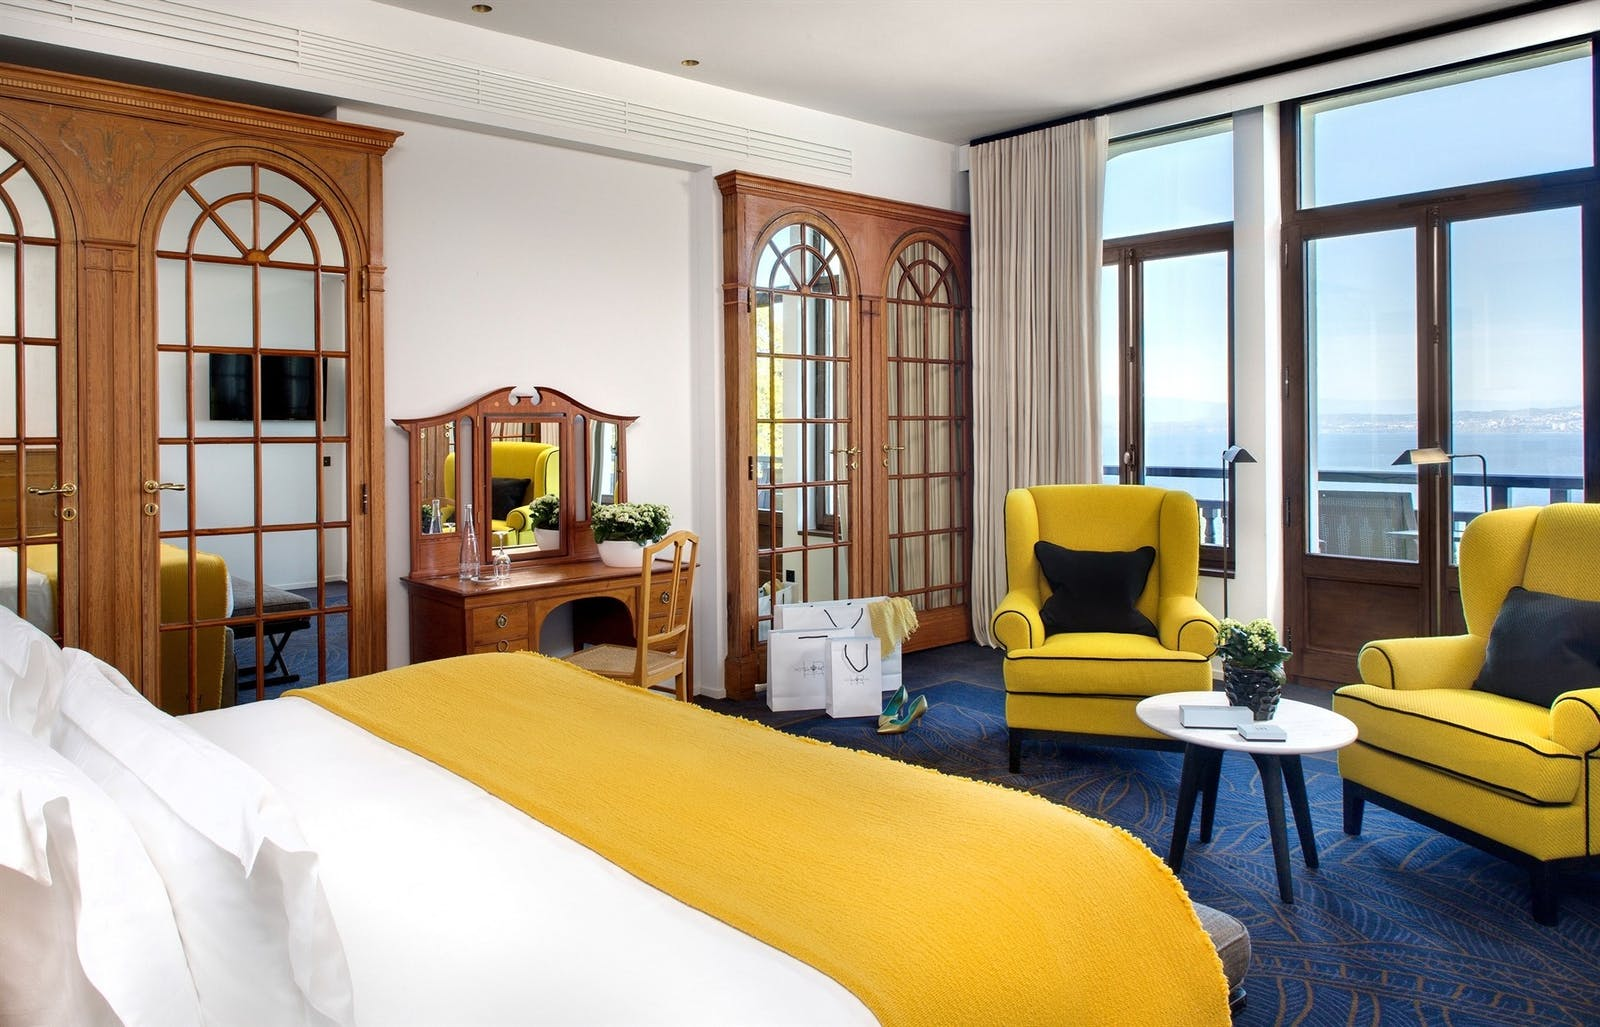 Belle Epoque Suite, Hotel Royal, Evian Resort, Lake Geneva, France